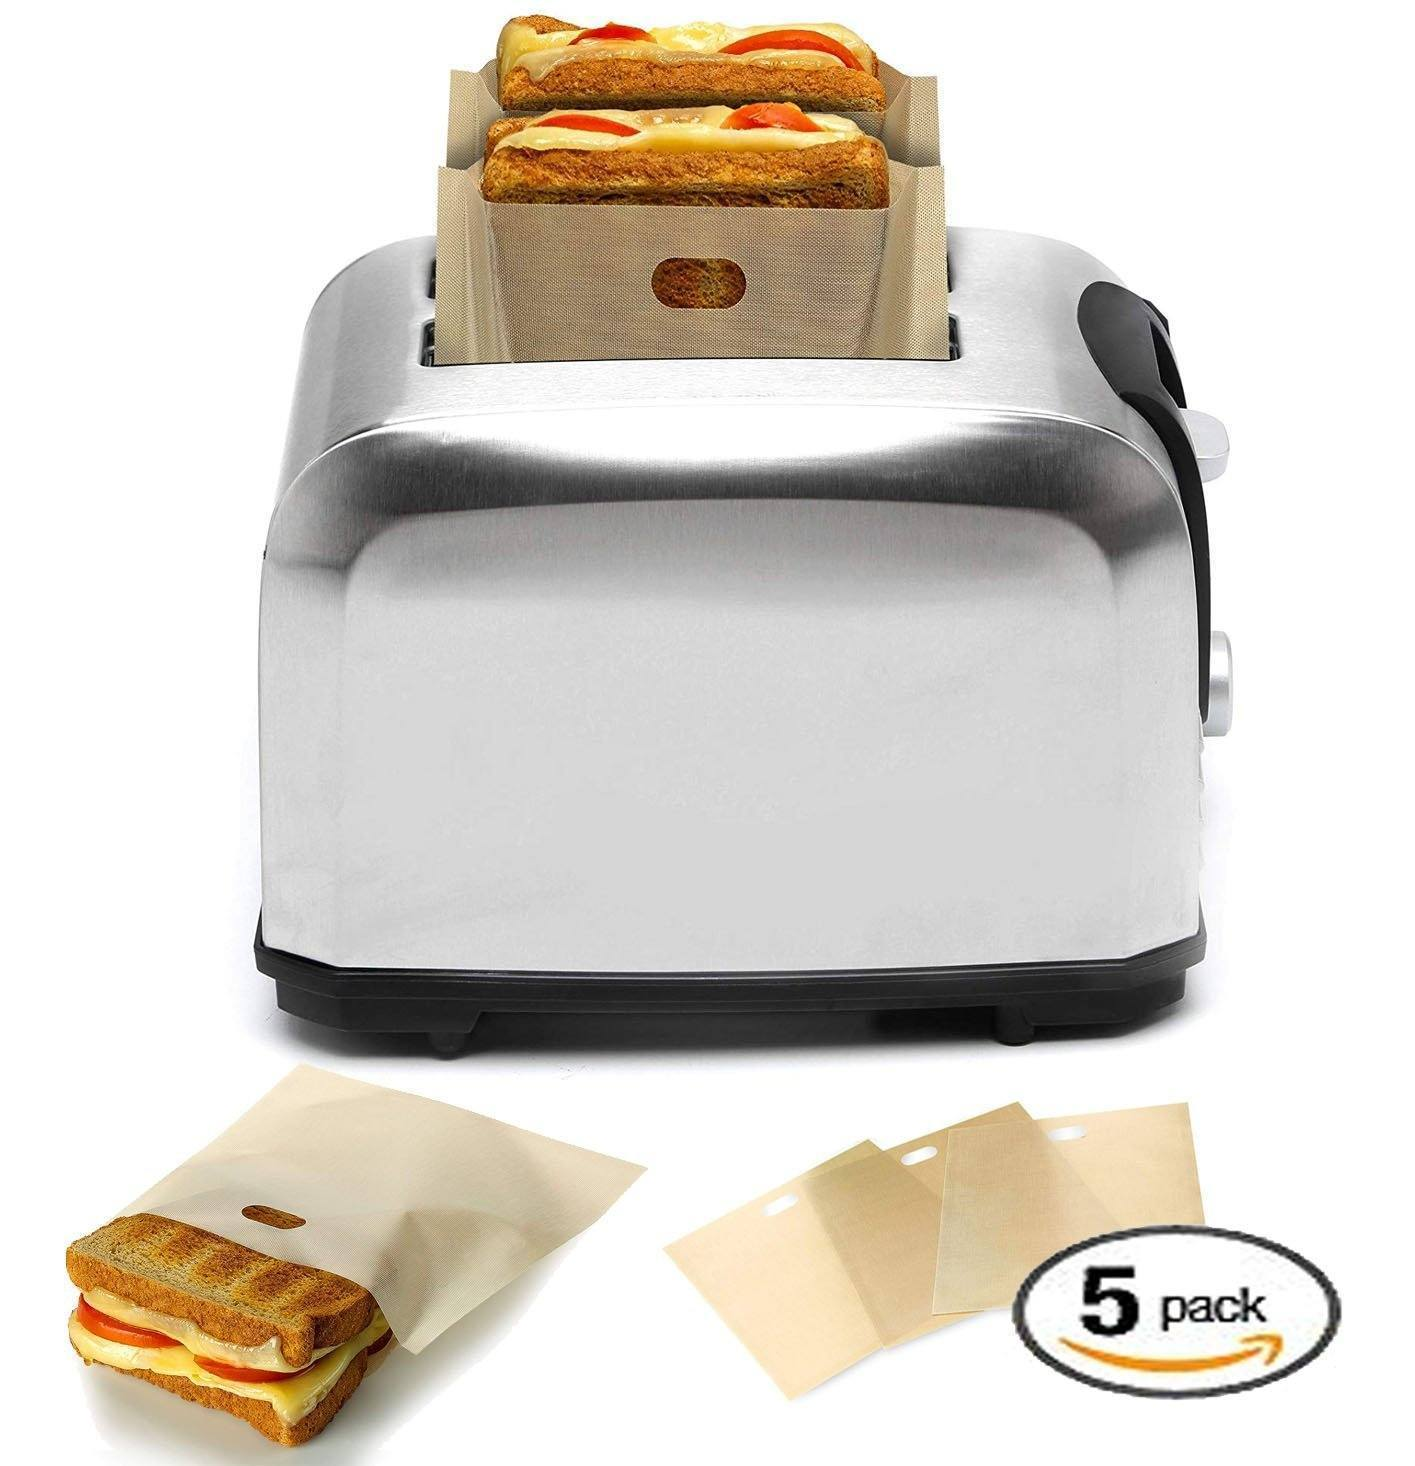 Reusable Perfect Toaster Bag (5-pcs Set)